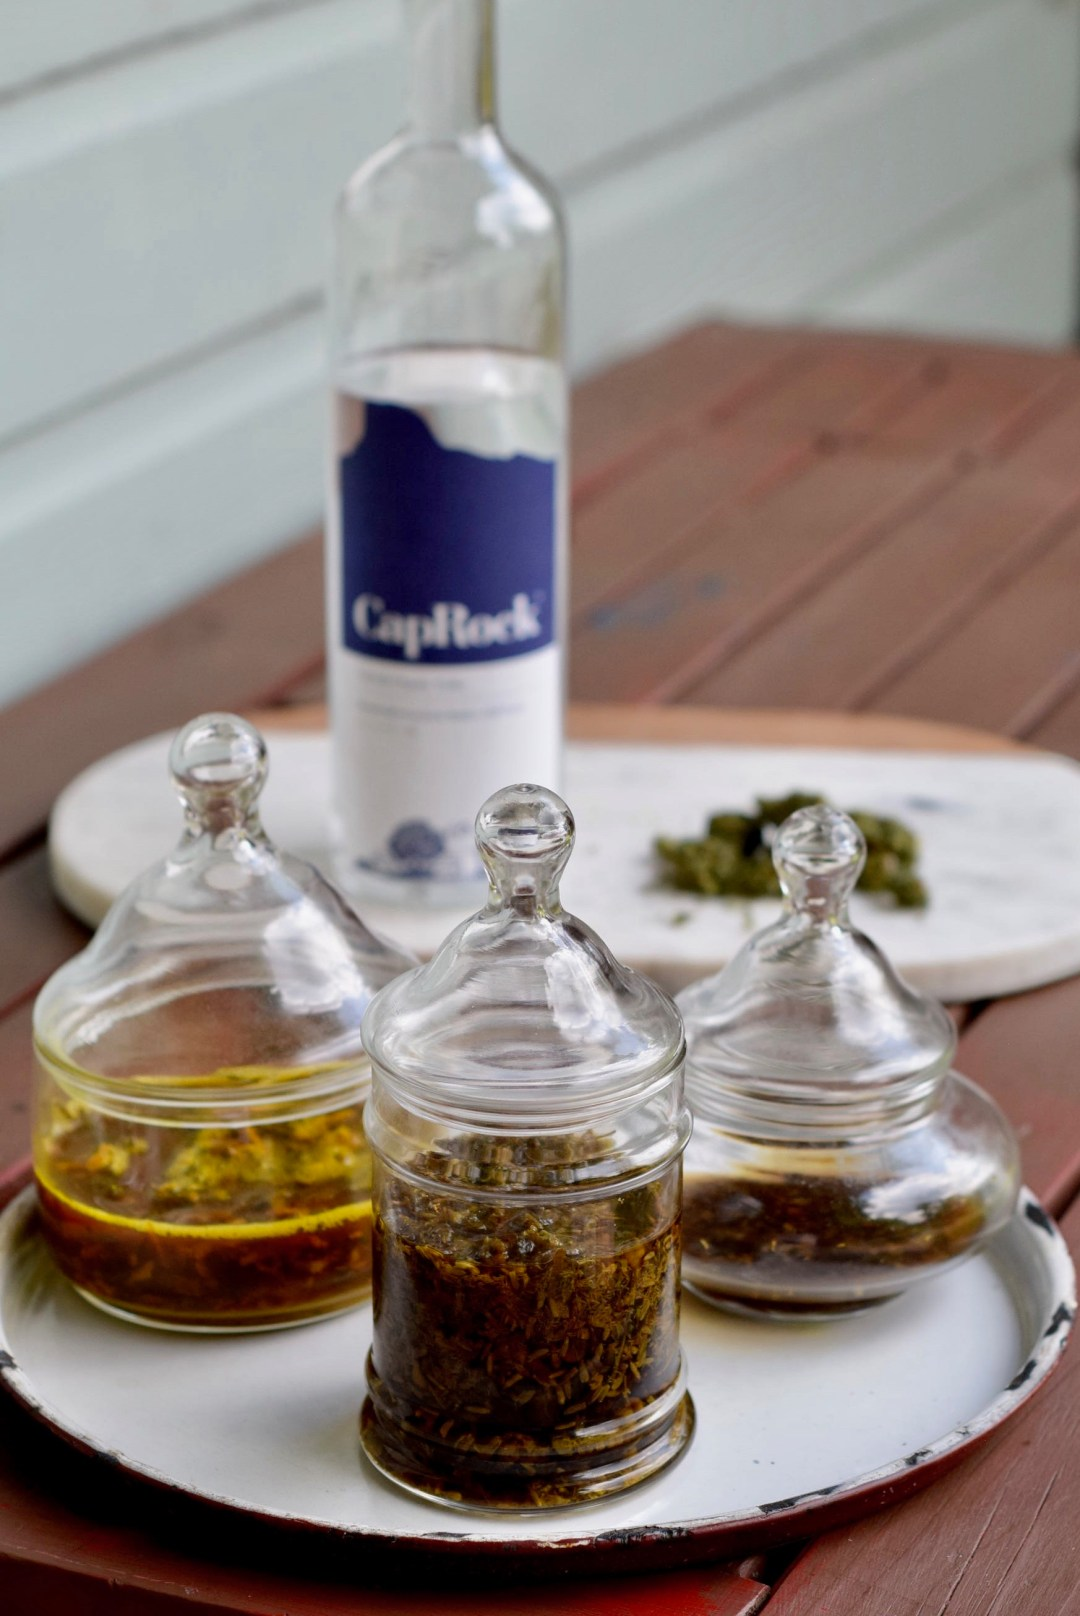 Tinctures 101 3 Potent Cannabis Tincture Recipes Updated 2020 Wake Bake